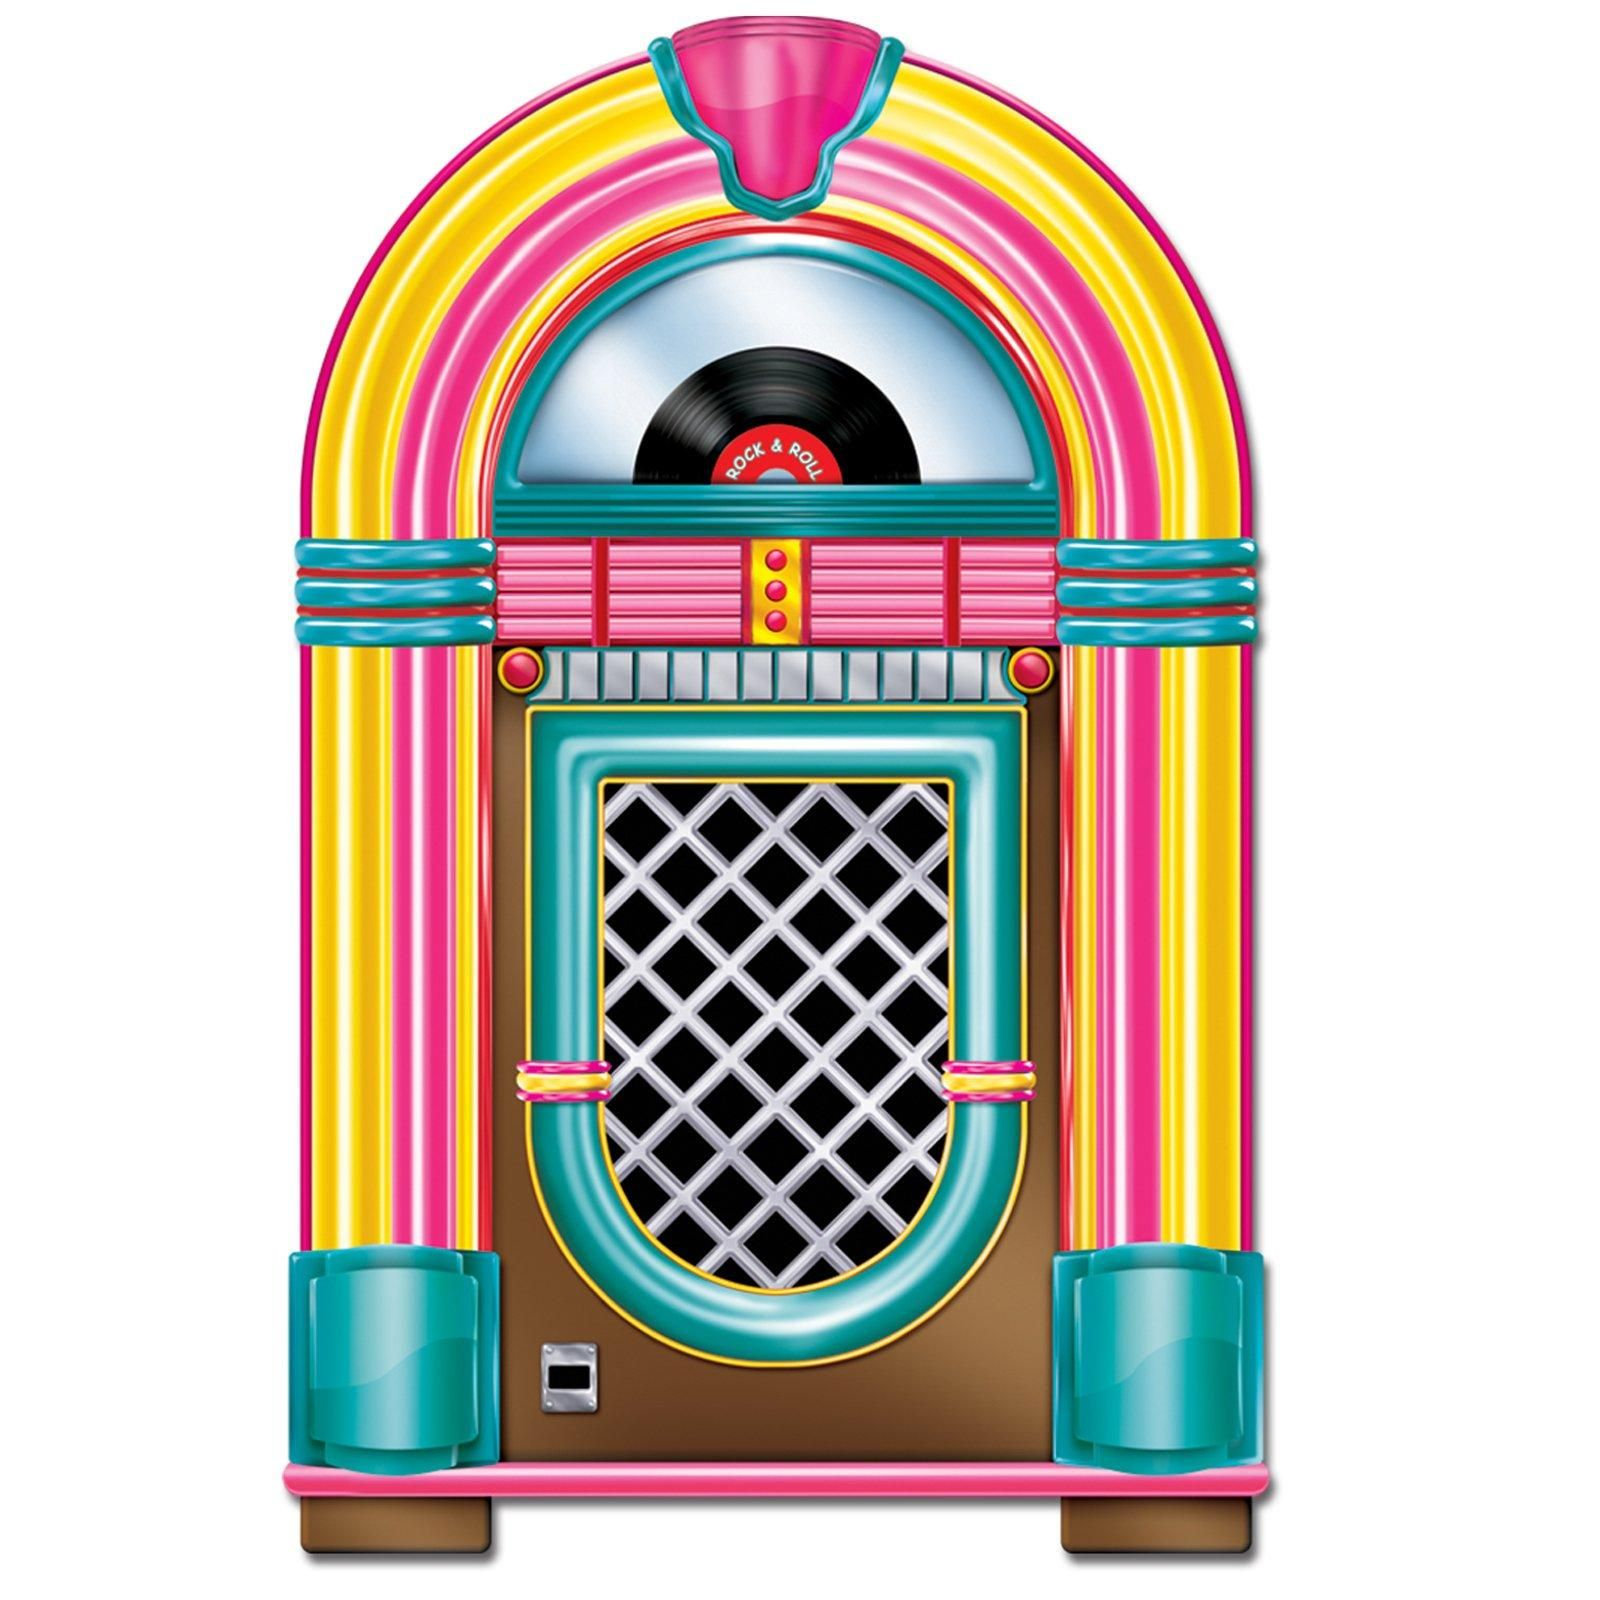 1950s jukebox clip art clipart free clipart clipart myndir rh pinterest co uk 50's jukebox clipart free jukebox clipart